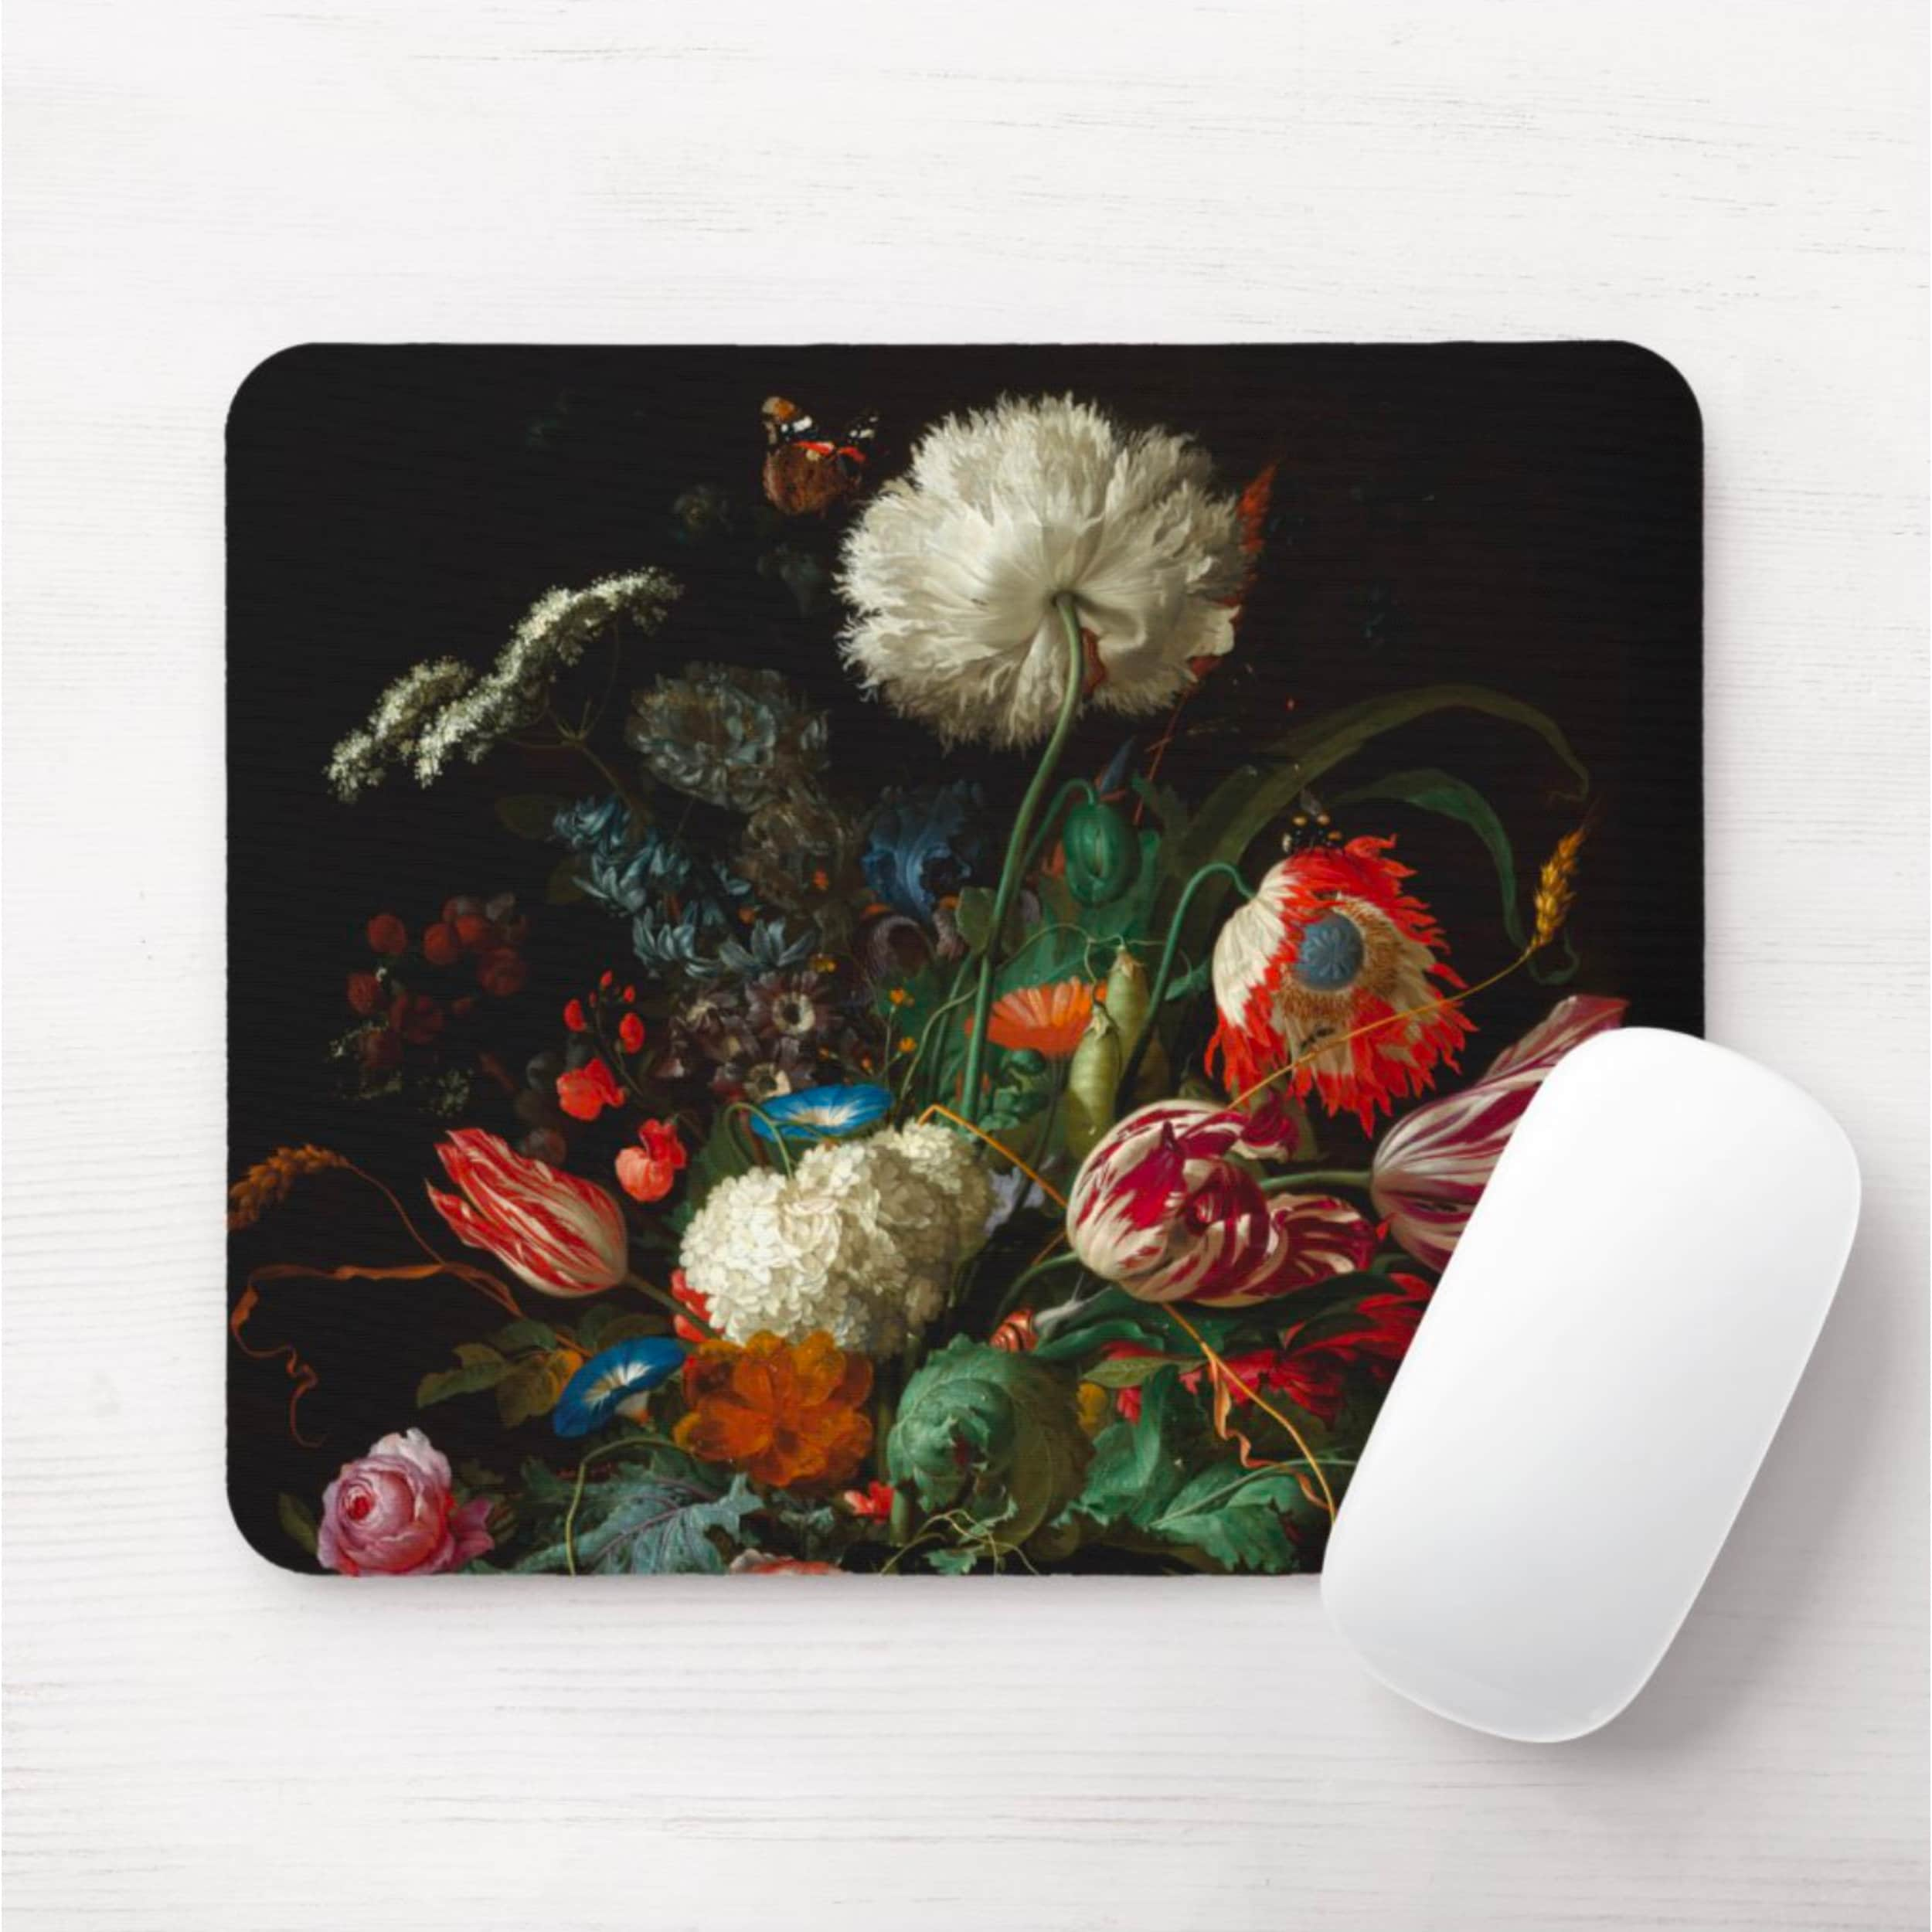 Dutch Floral Mouse Pad Mousepad Black Dark Flowers Butterfly